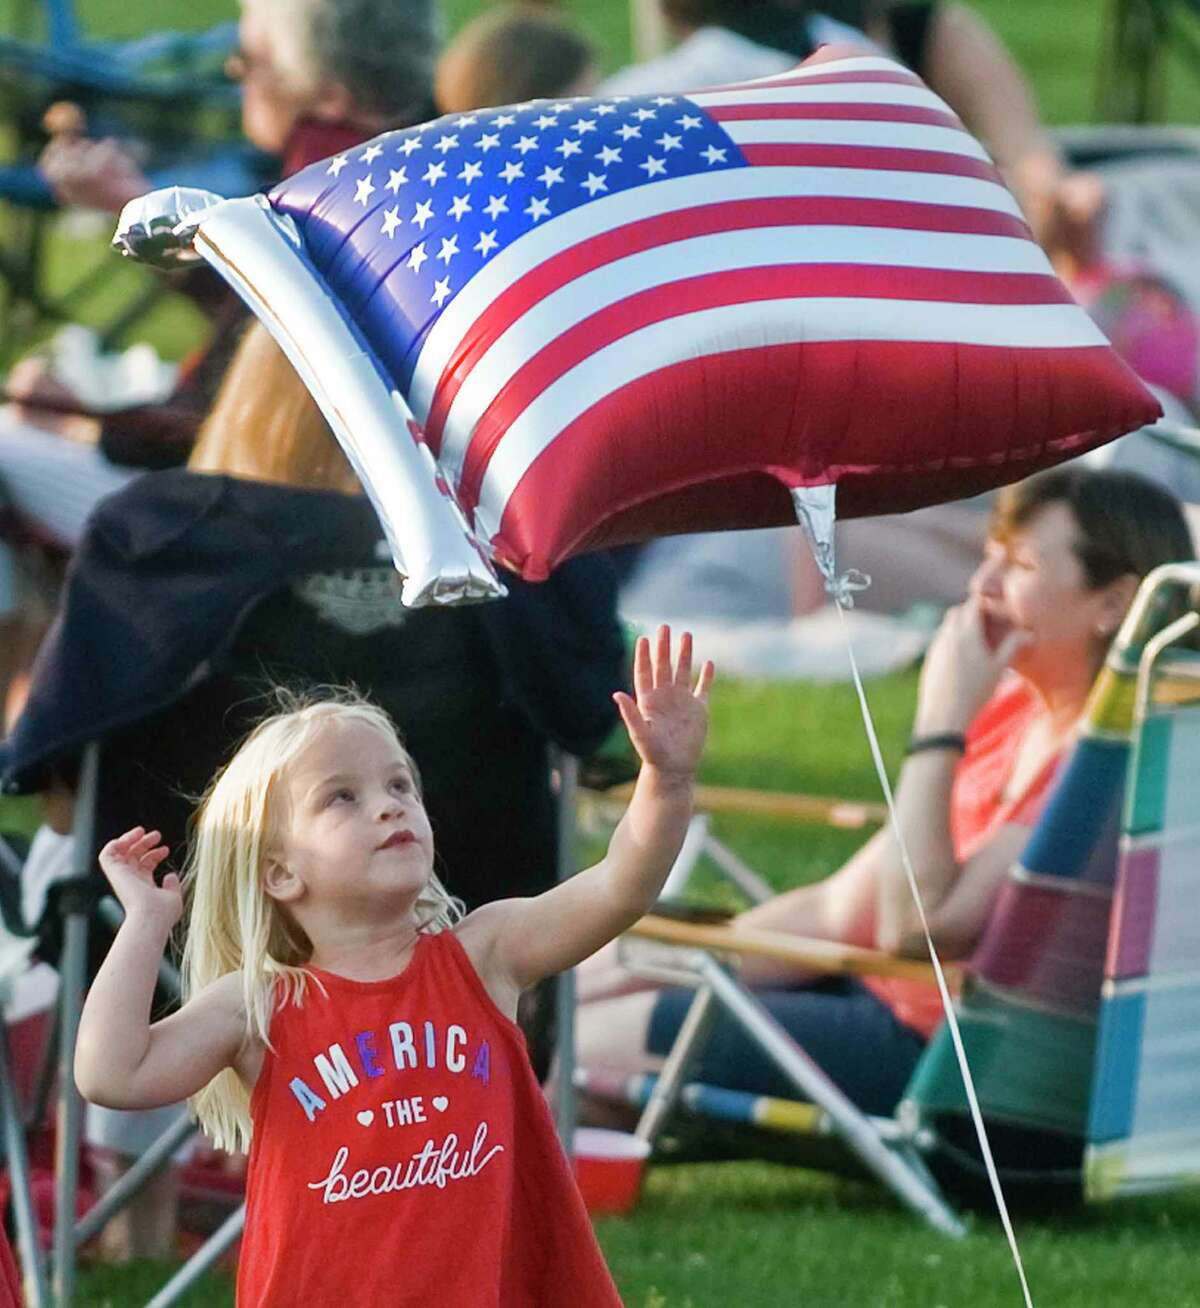 Violet Nosenzo, 3, of Ridgefield, bats around a balloon at the town's annual fireworks display, which kicked off at Ridgefield High School's Tiger Hollow Stadium on July 5.